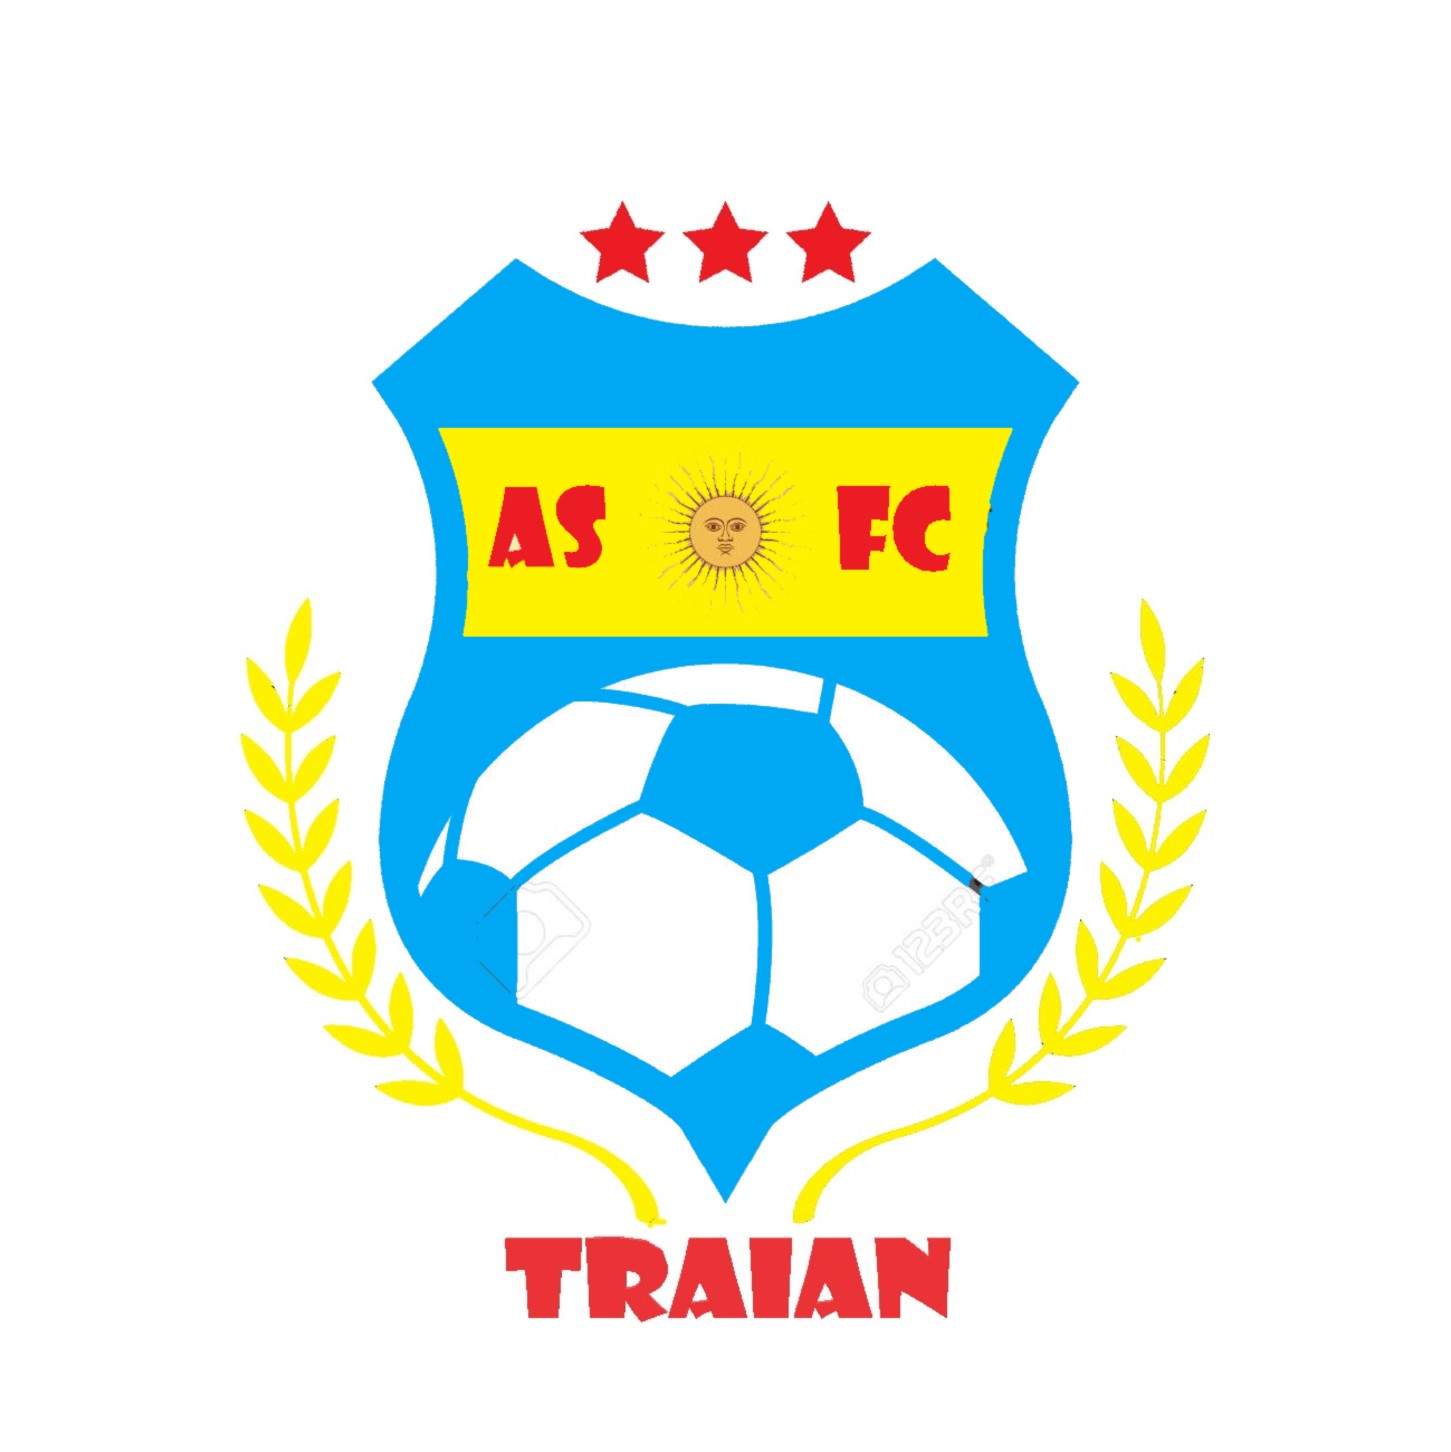 AS FC Traian